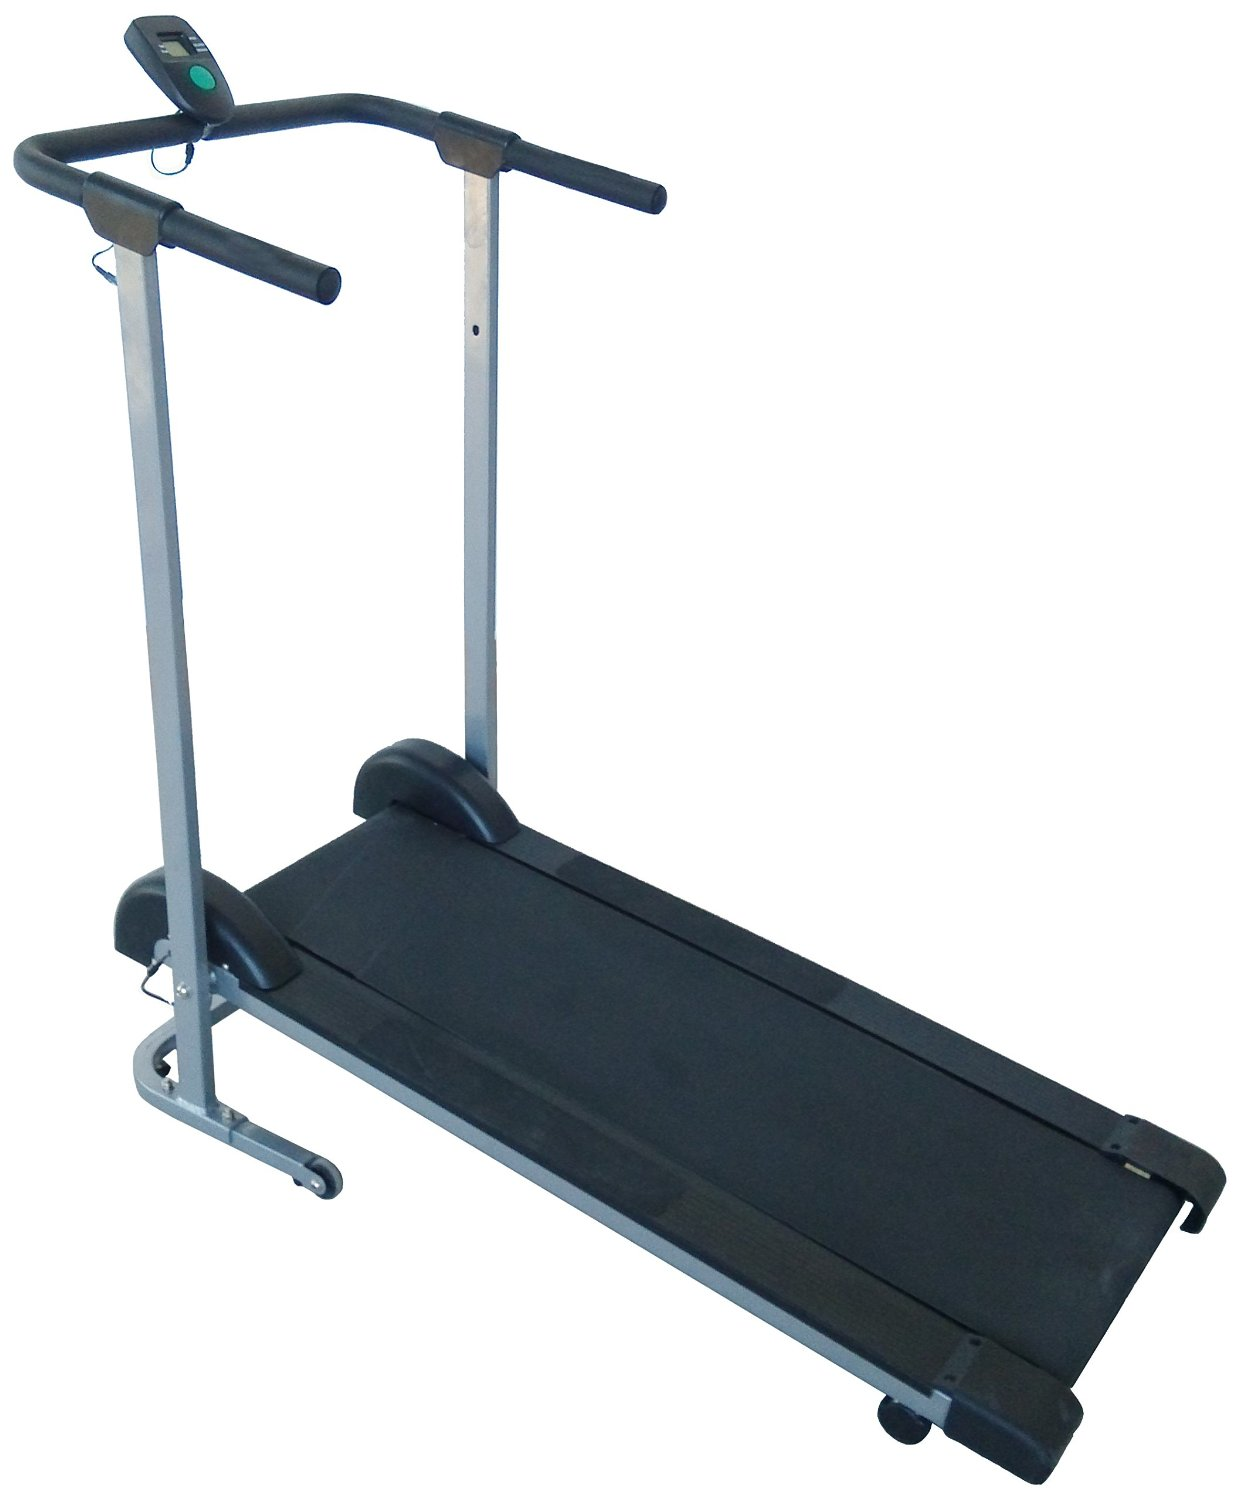 Sunny Health & Fitness SF-T1407M Manual Treadmill